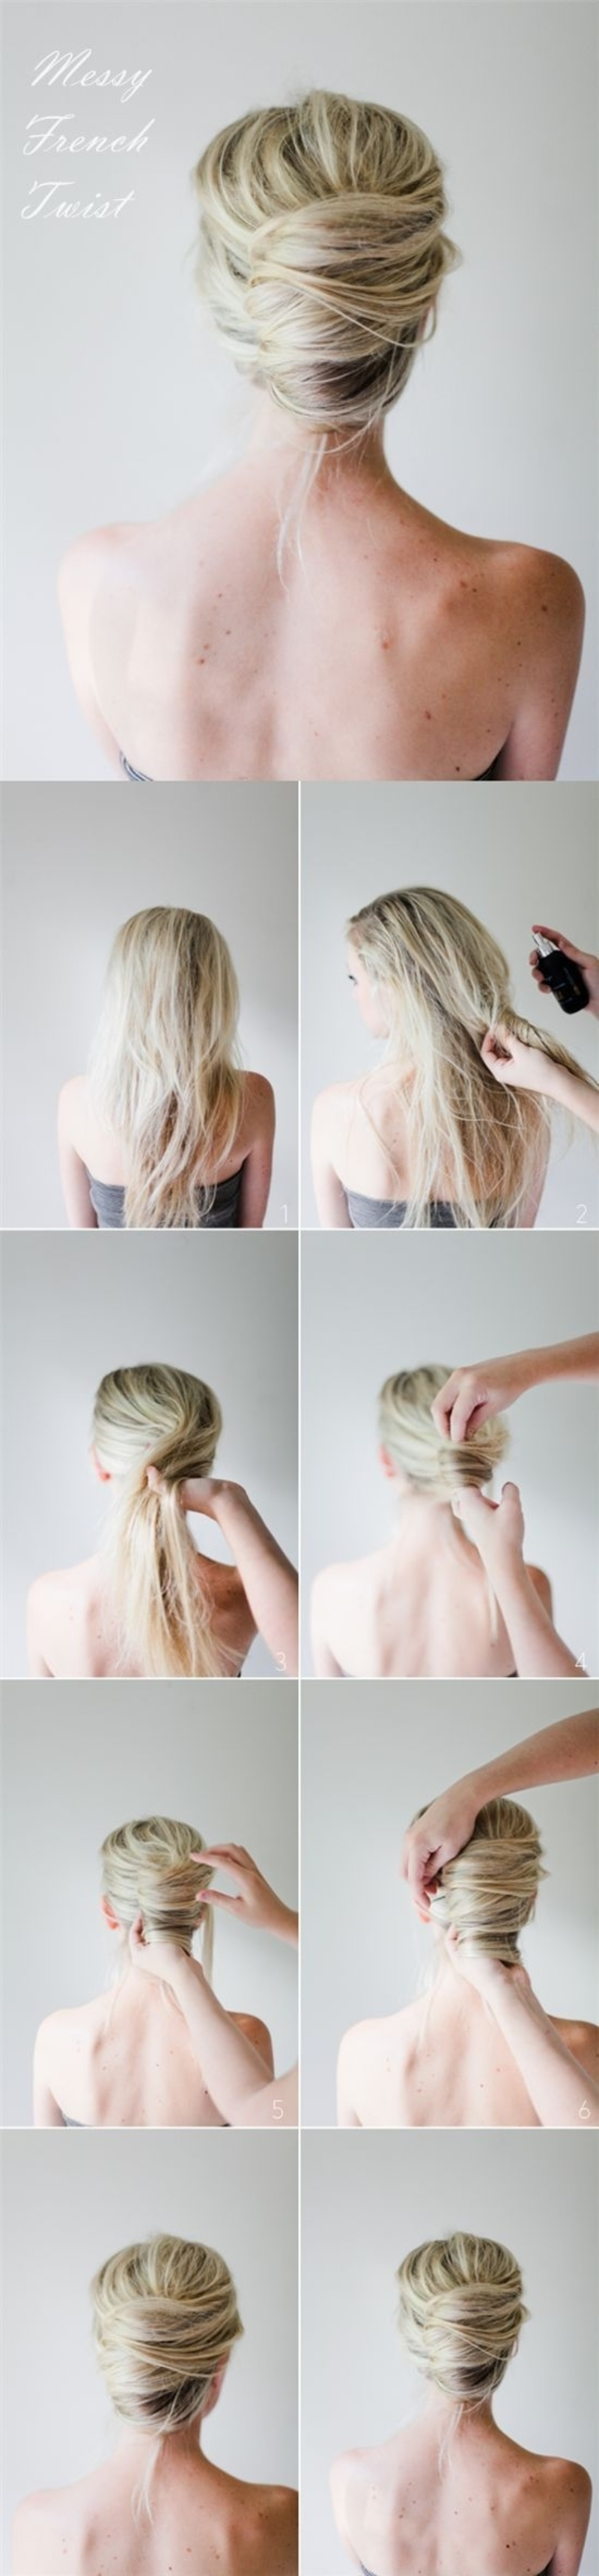 16 #Gorgeous Hair Styles for Lazy Girls like Me ... | Wedding ...